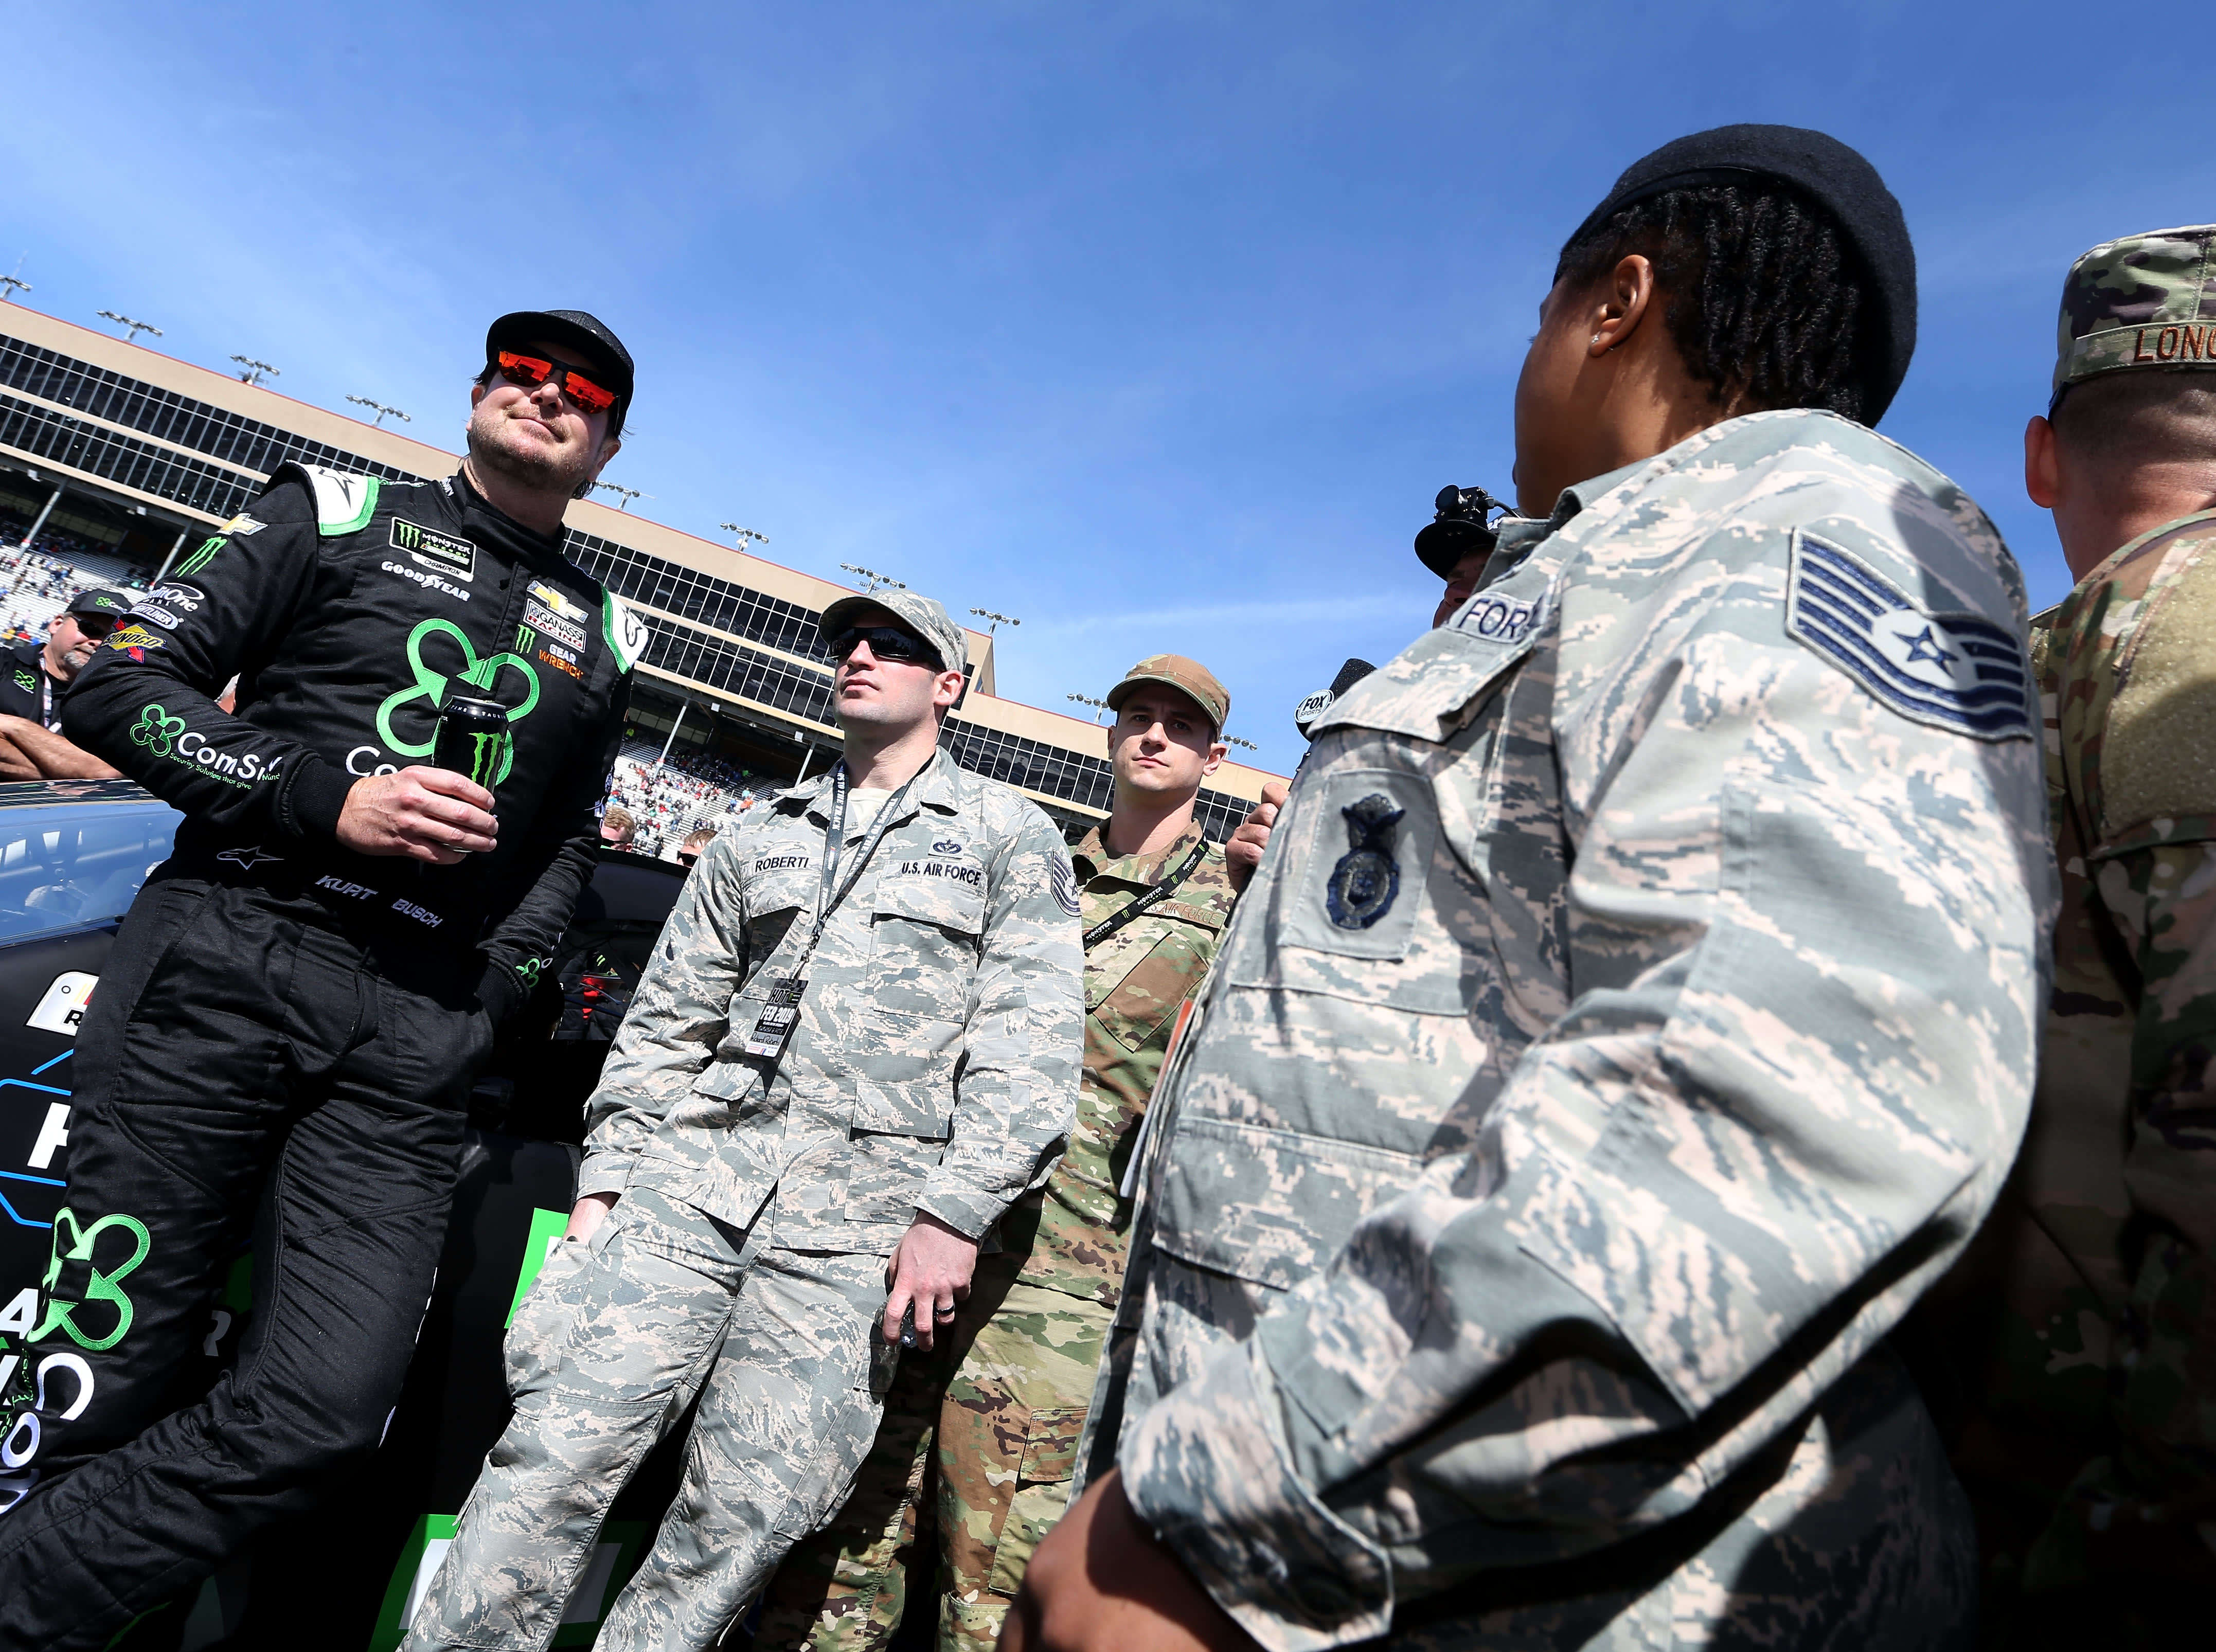 NASCAR driver Kurt Busch is investing in military veterans to help them 'reintegrate' into civilian life